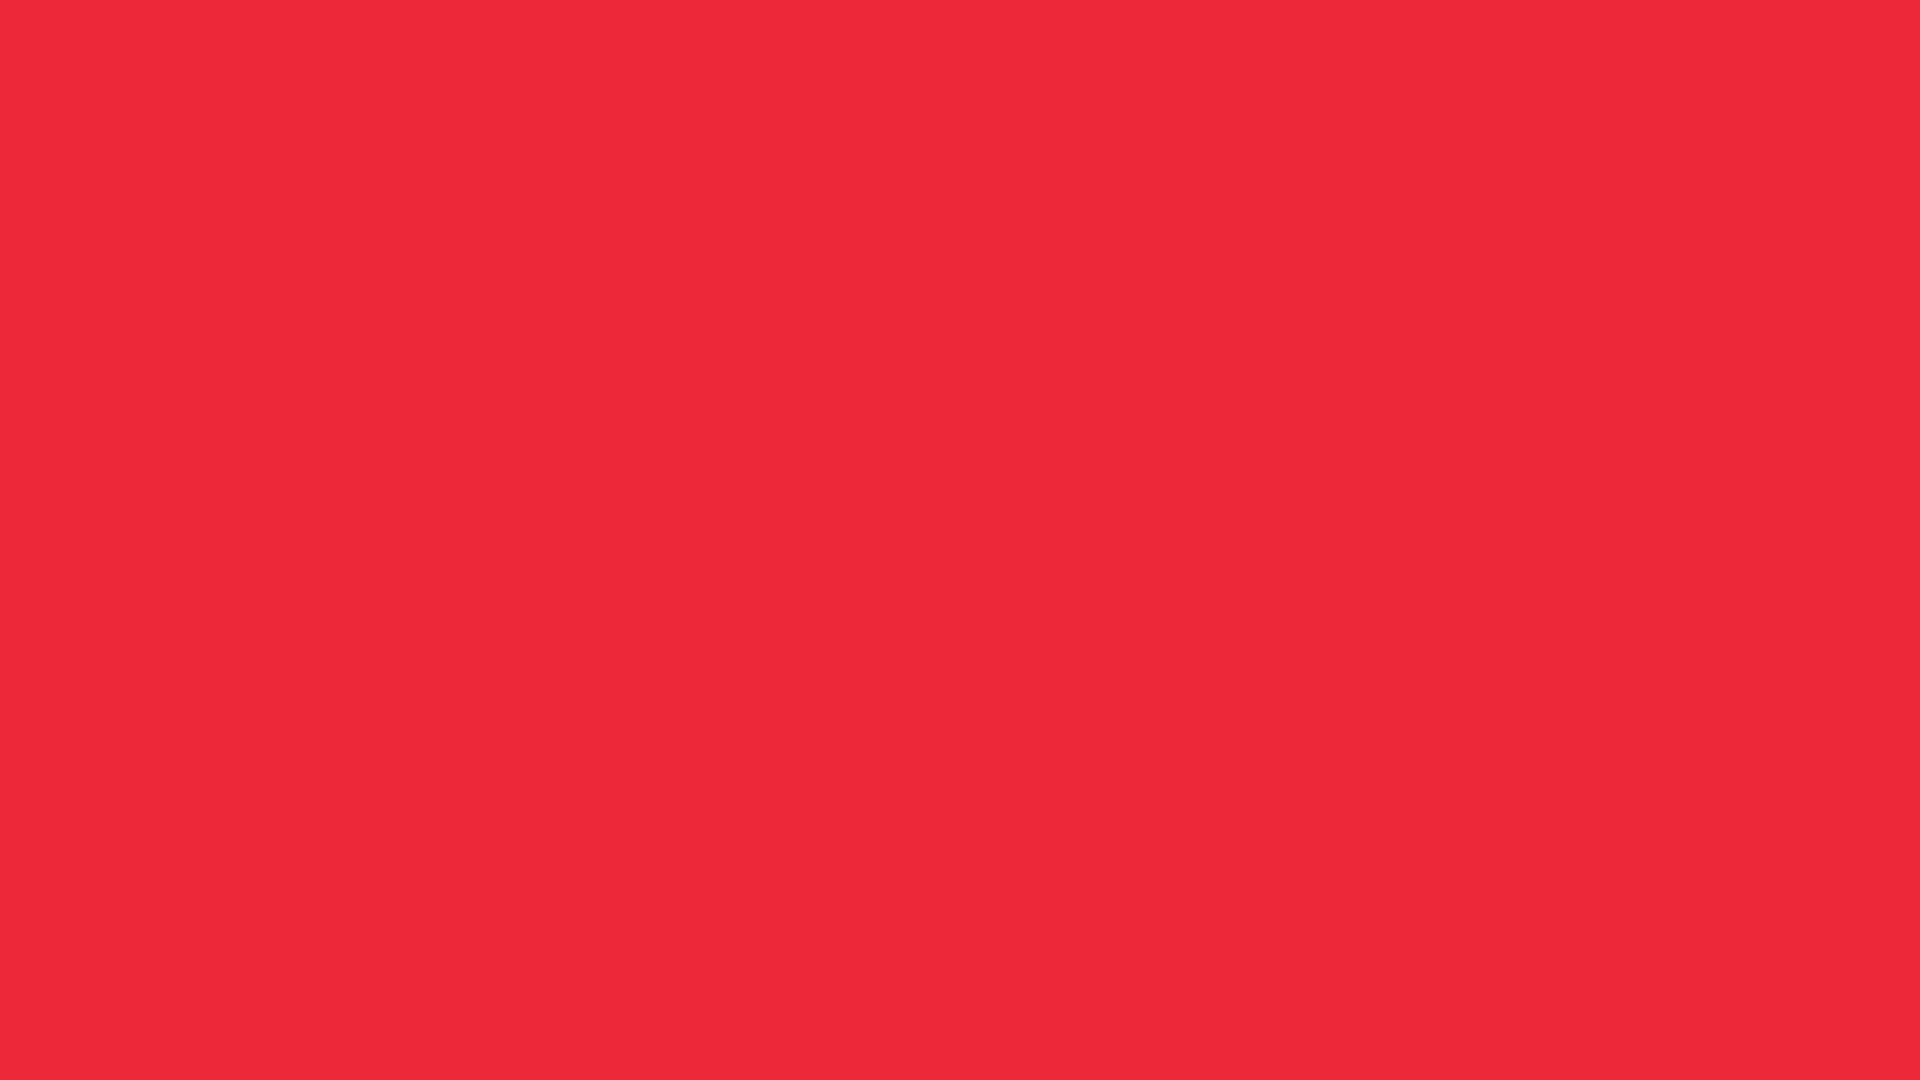 1920x1080 Red Pantone Solid Color Background